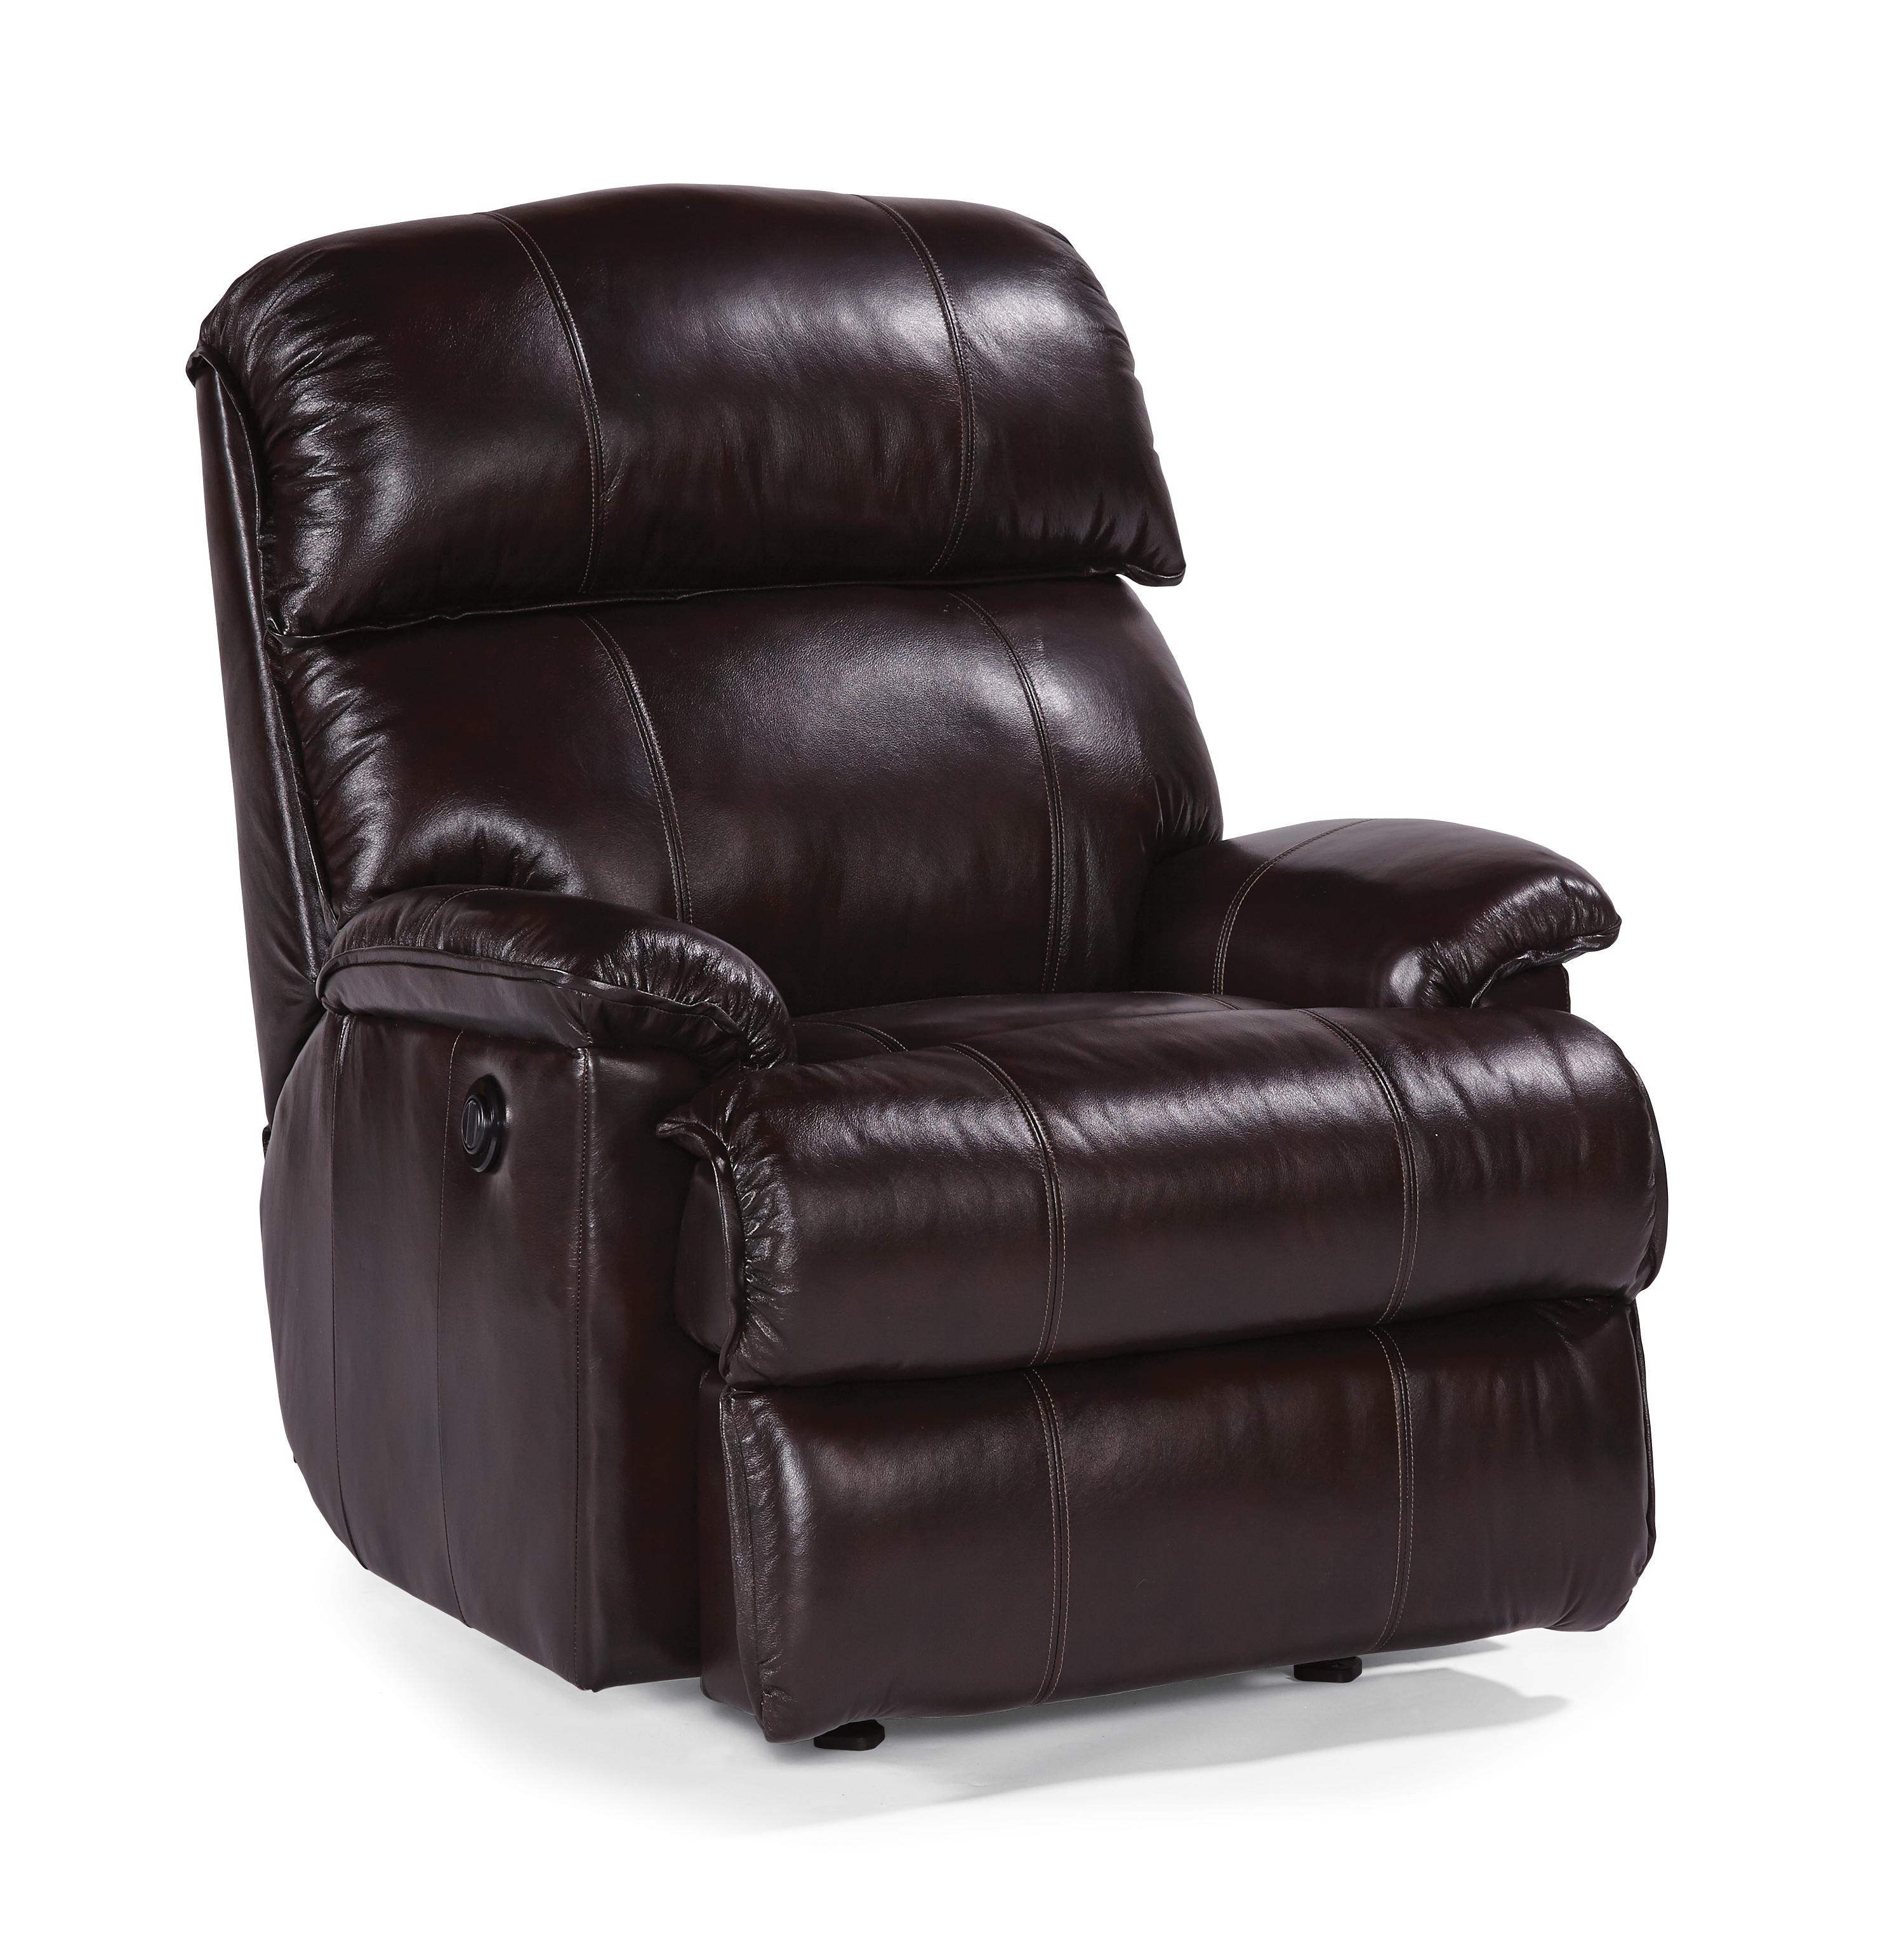 Accents Geneva Power Rocker Recliner by Flexsteel at Factory Direct Furniture